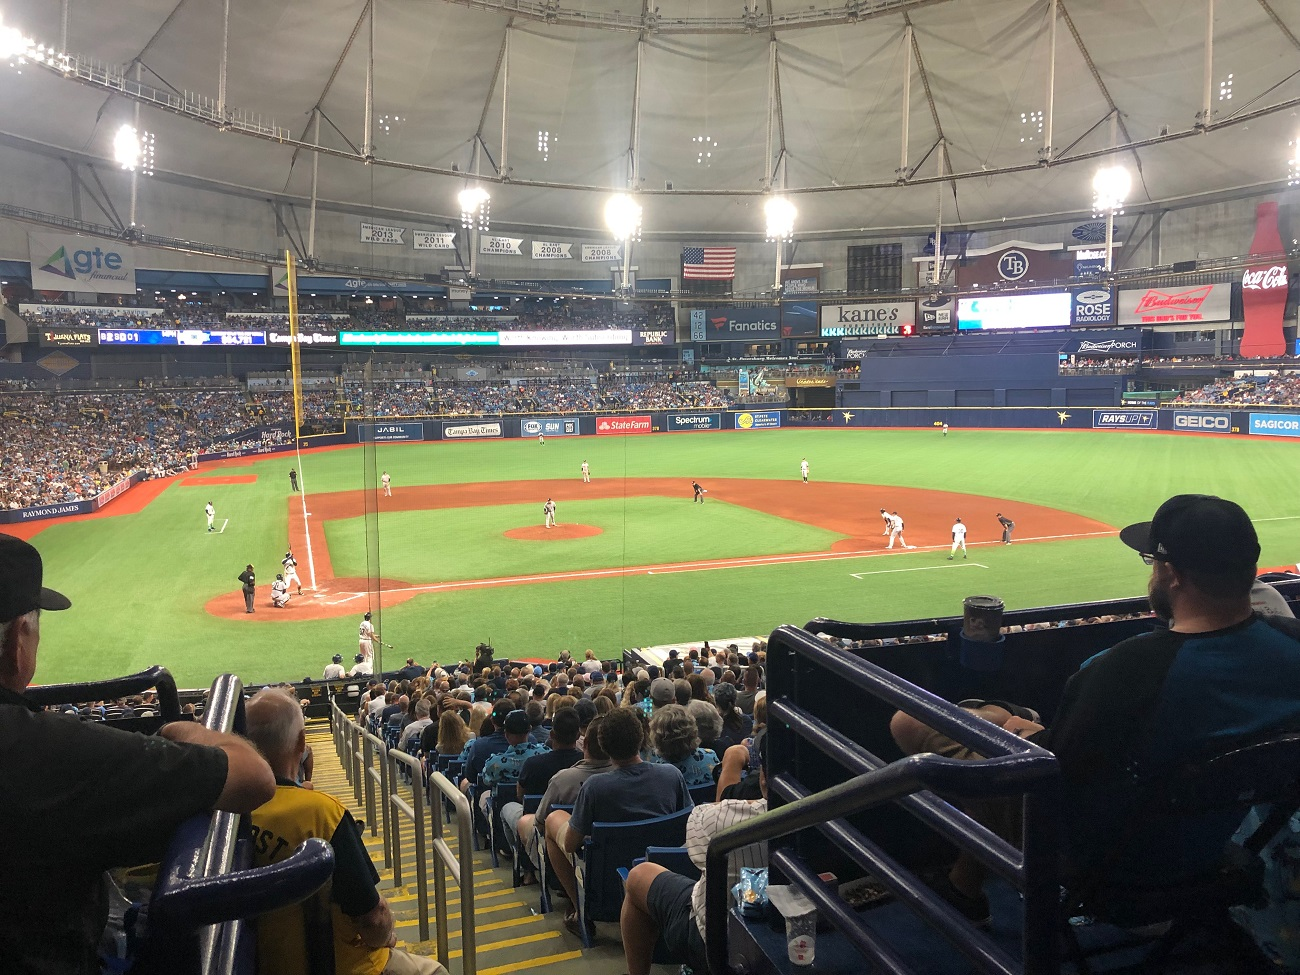 Game at Tampa Bay Rays Stadium